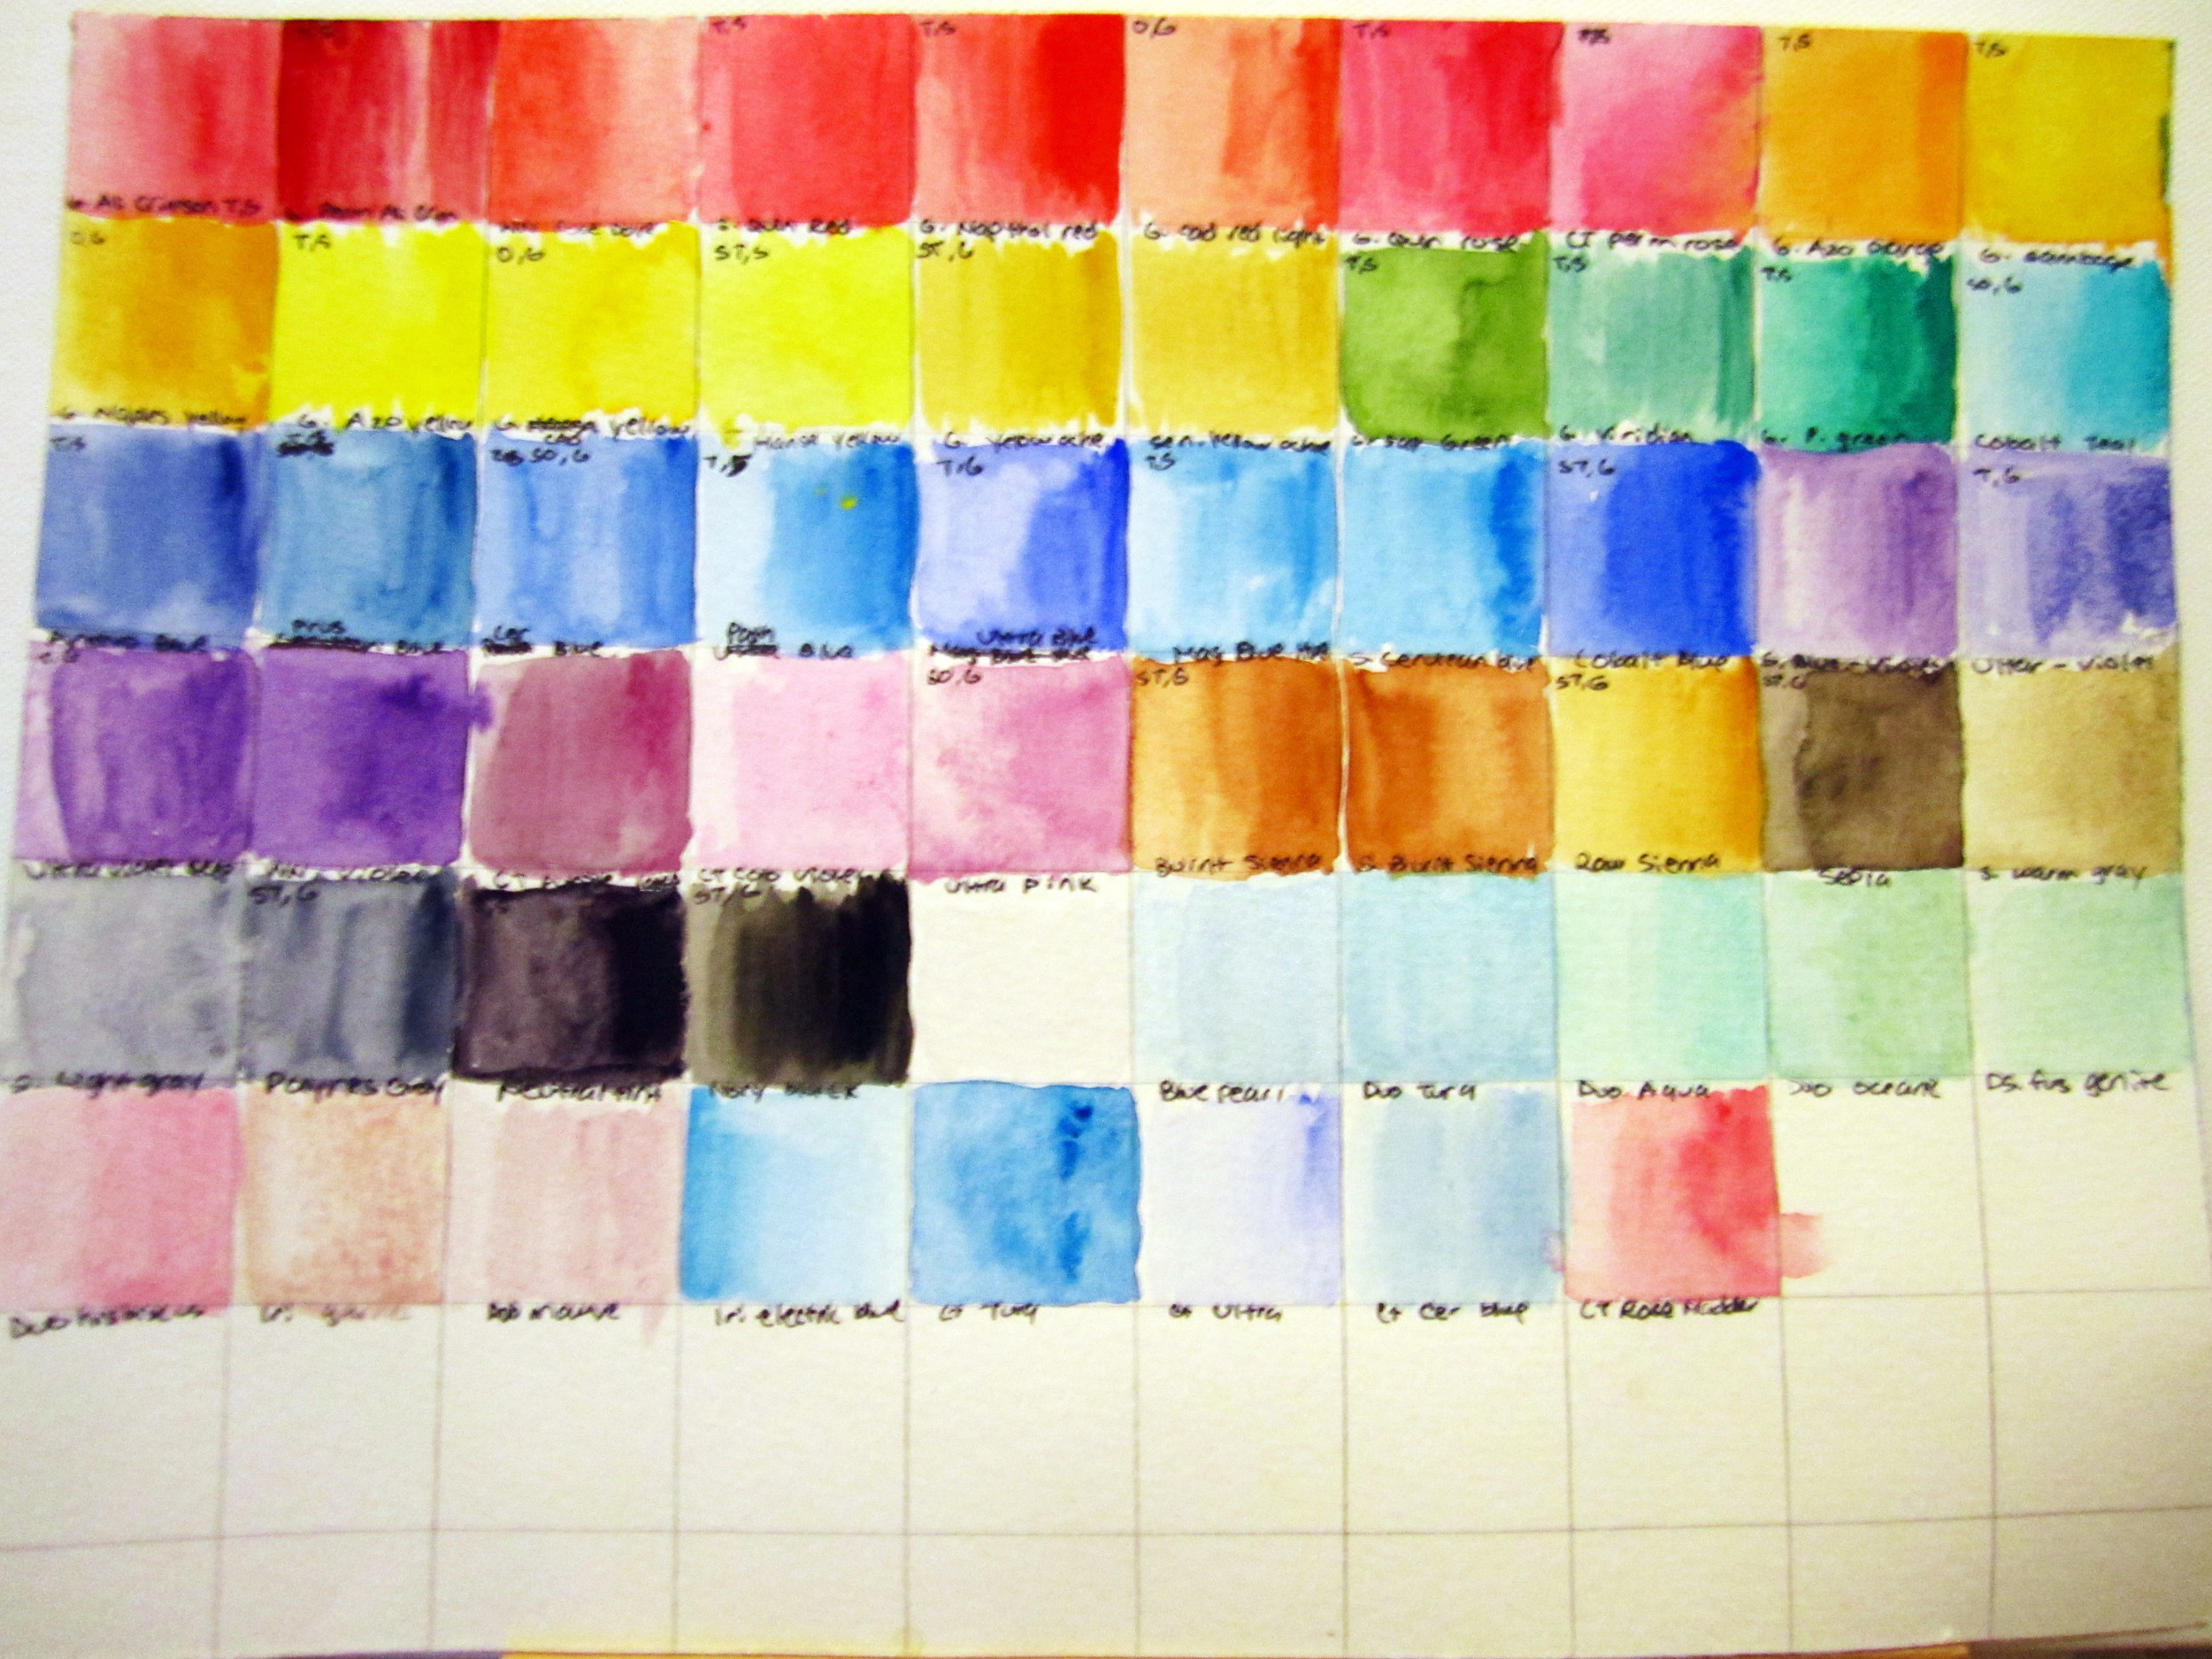 All my paints on one color chart